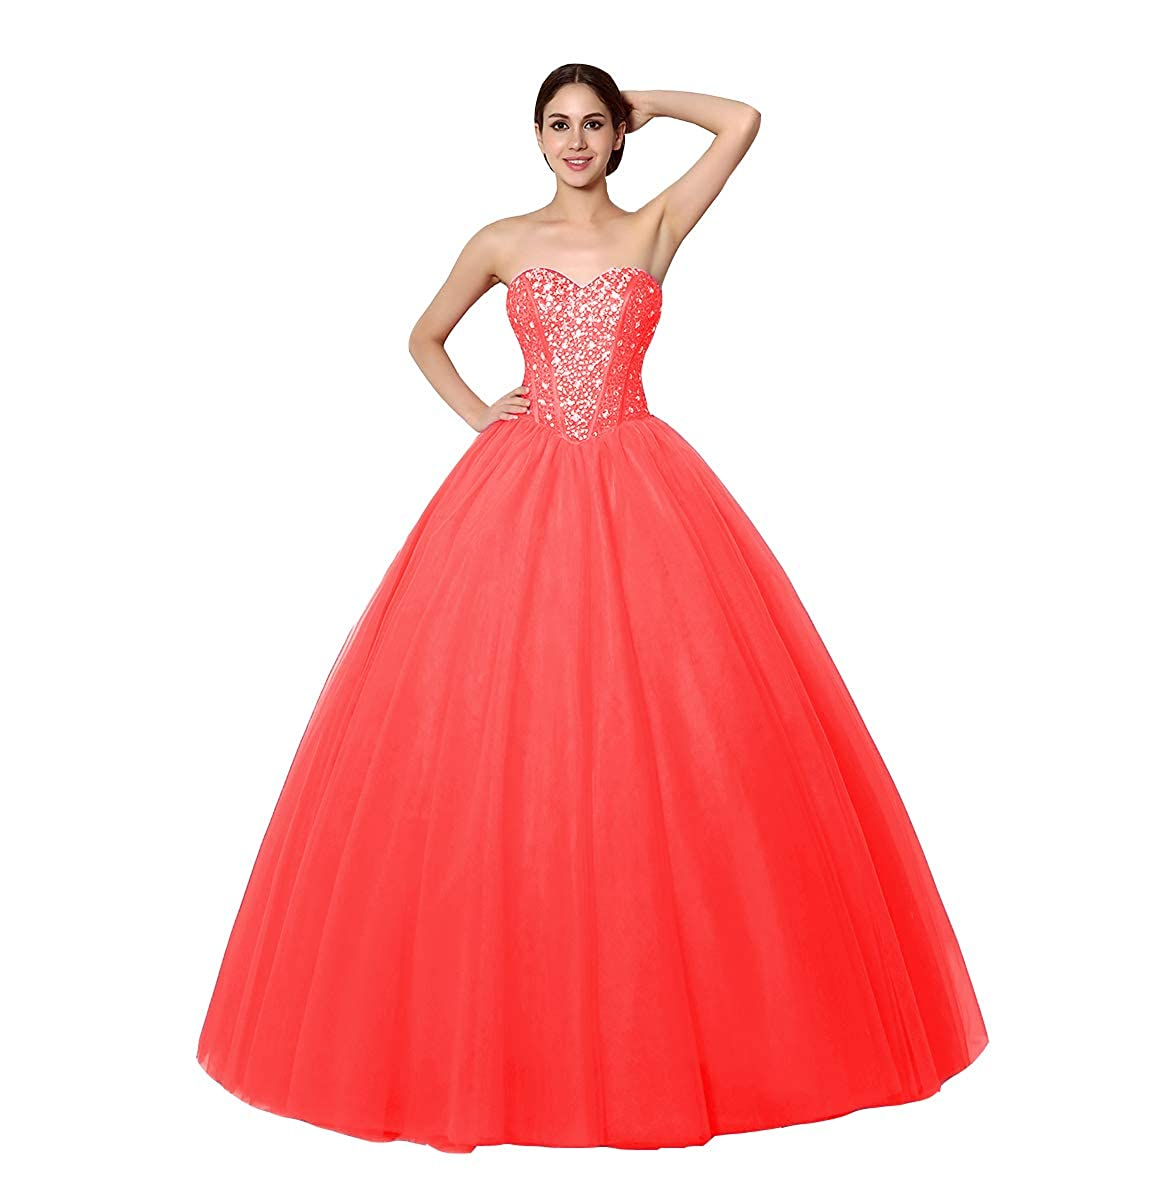 Coral FTBY Sweetheart Beaded Quinceanera Dress Sweet 16 Tulle Ball Gowns Long Prom Dress Crystals 2019